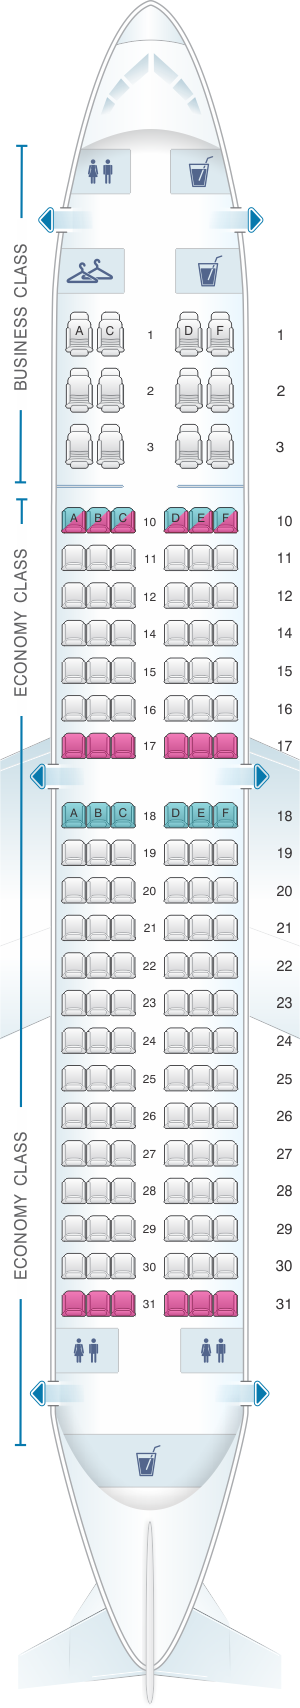 Seat map for Airtran Airways Boeing B737 700